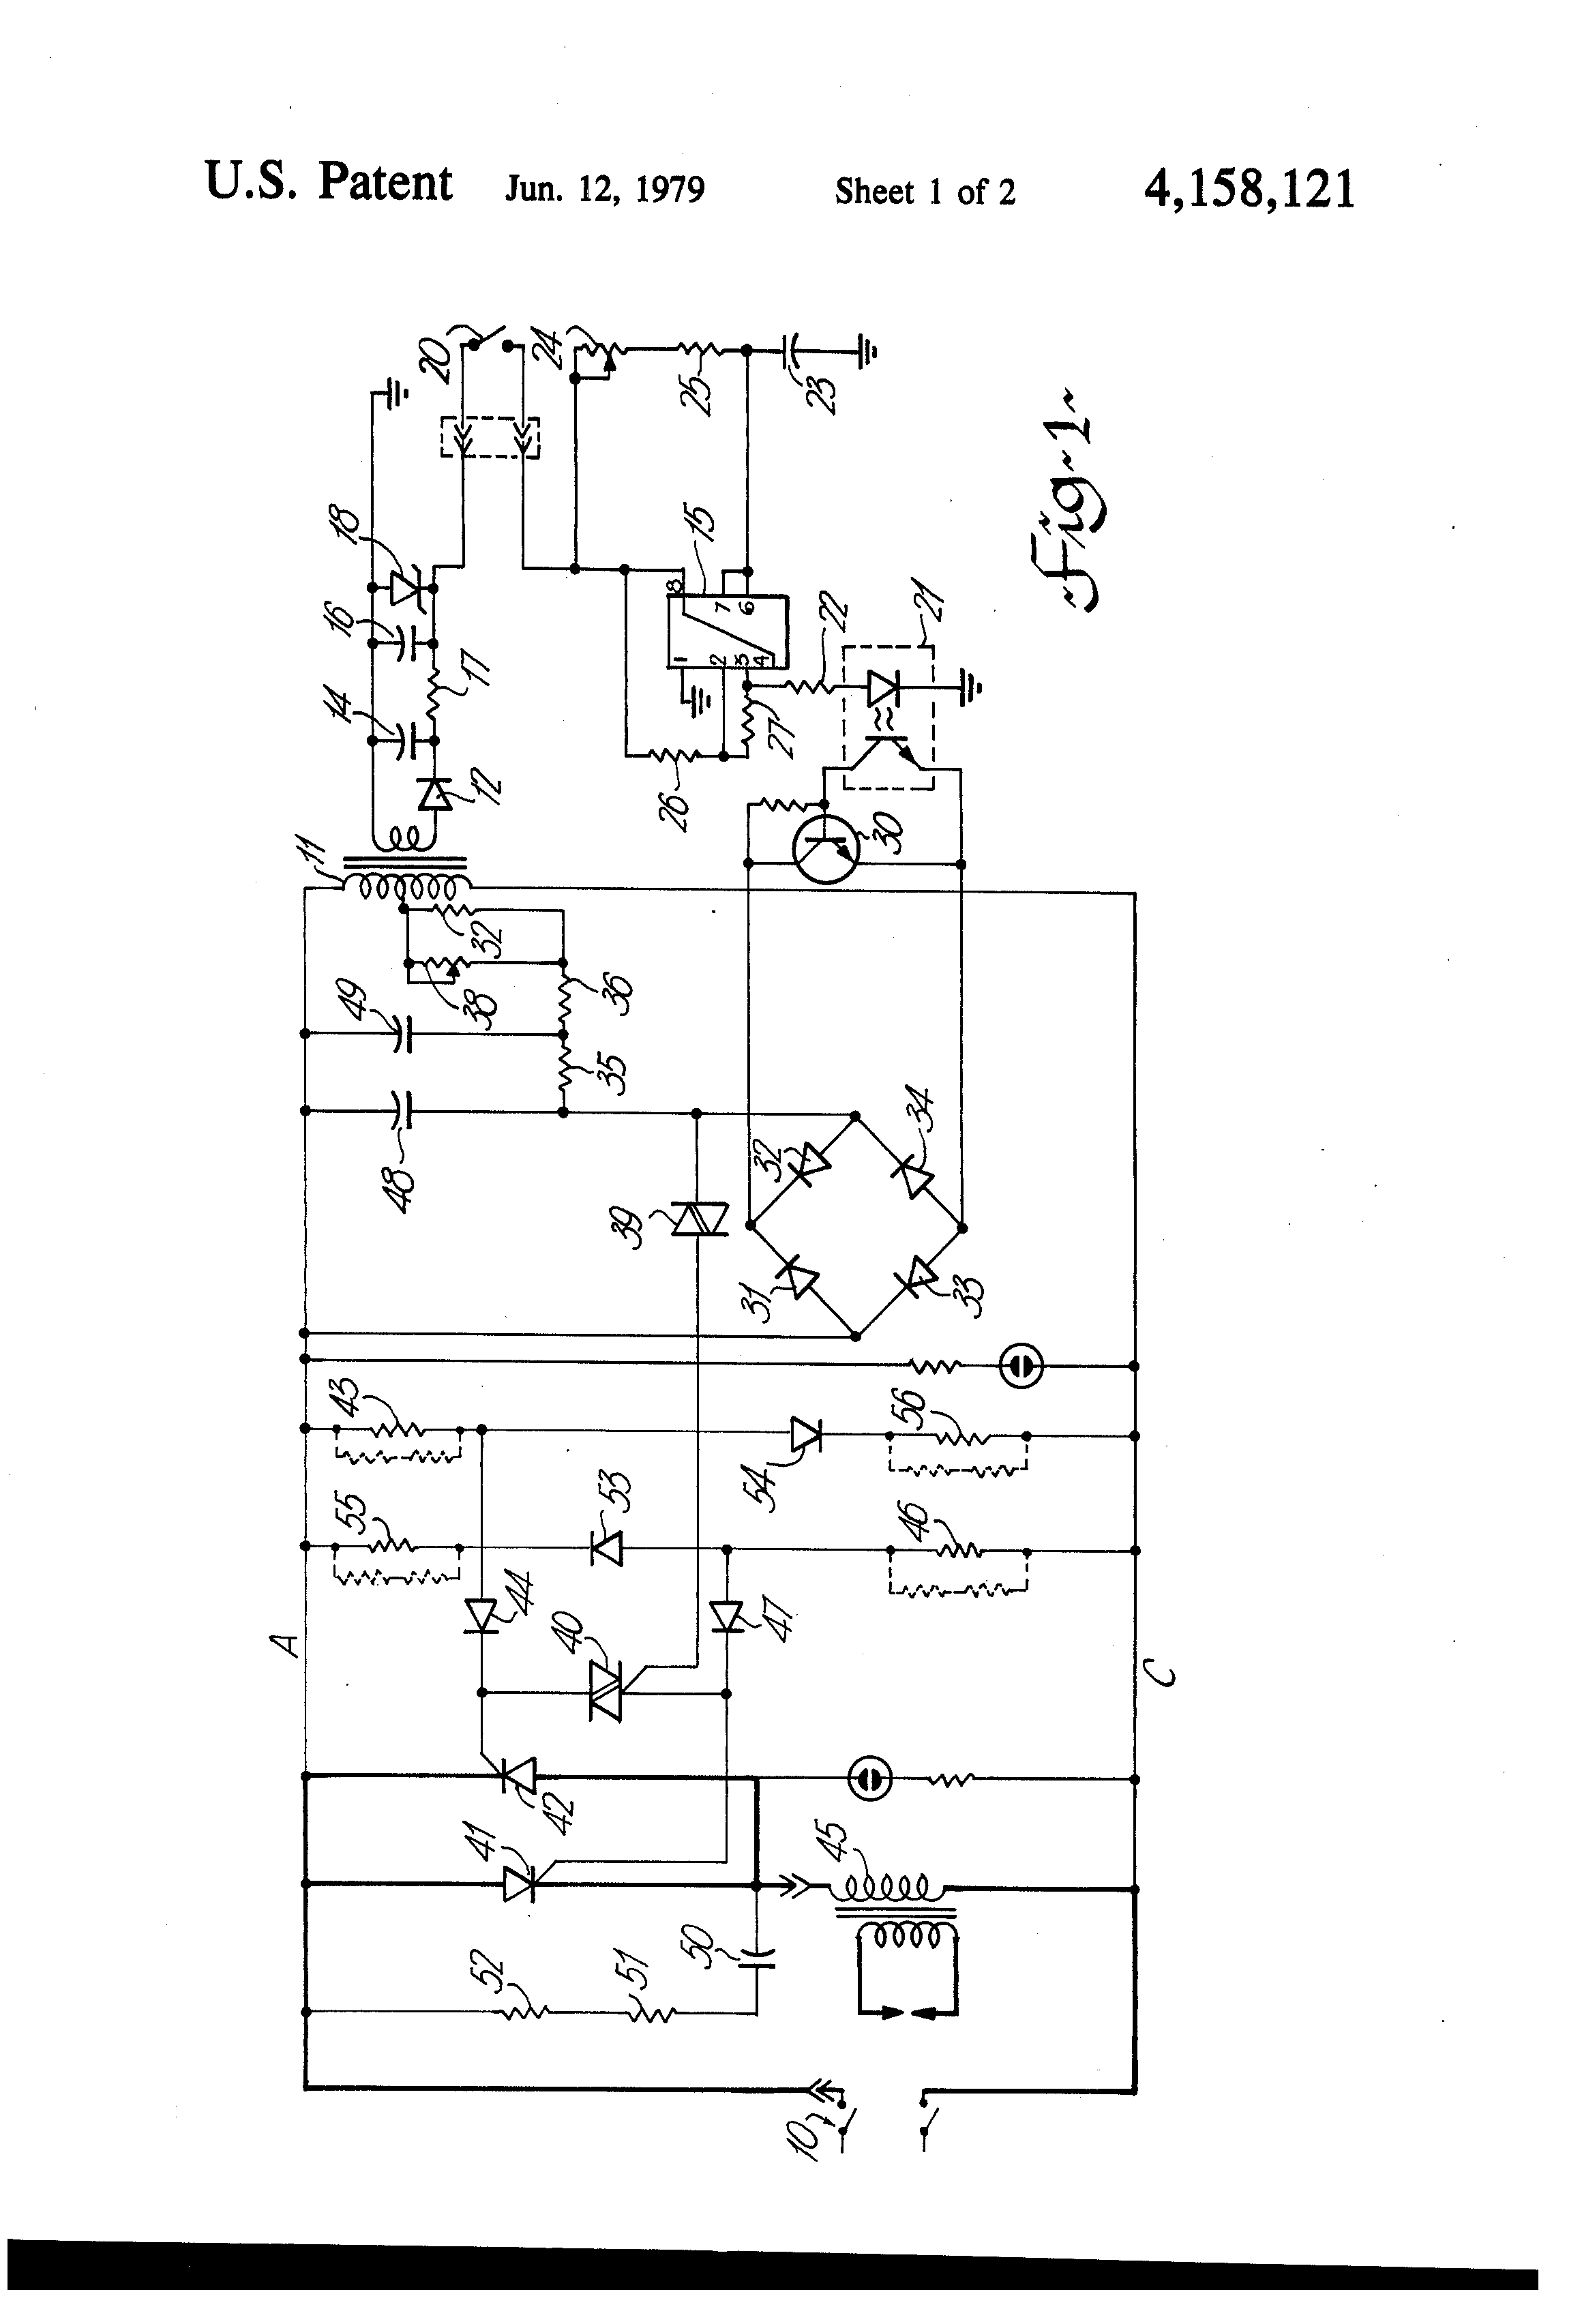 Spot Welding Machine Wiring Diagram : 35 Wiring Diagram